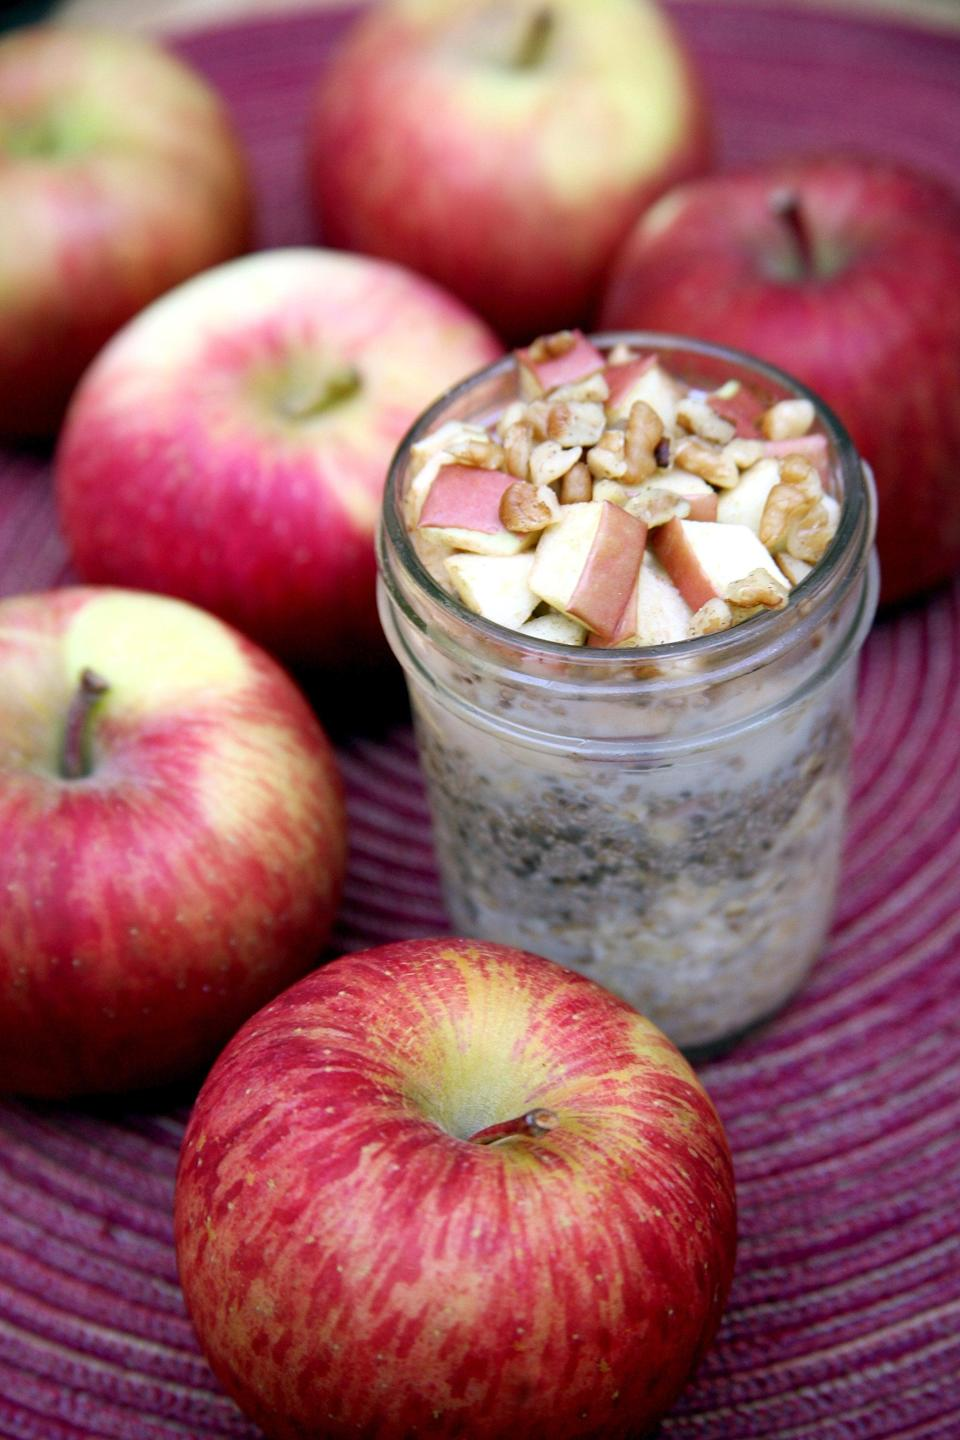 "<p>Here's a healthier way to get your apple-pie fix: apple pie overnight oats. It's a perfectly sweet way to start your day with under 13 grams of sugar.</p> <p><strong>Calories:</strong> 325<br> <strong>Protein:</strong> 11.9 grams</p> <p><strong>Get the recipe:</strong> <a href=""https://www.popsugar.com/fitness/Apple-Pie-Overnight-Oats-38392543"" class=""link rapid-noclick-resp"" rel=""nofollow noopener"" target=""_blank"" data-ylk=""slk:apple pie overnight oats"">apple pie overnight oats</a></p>"